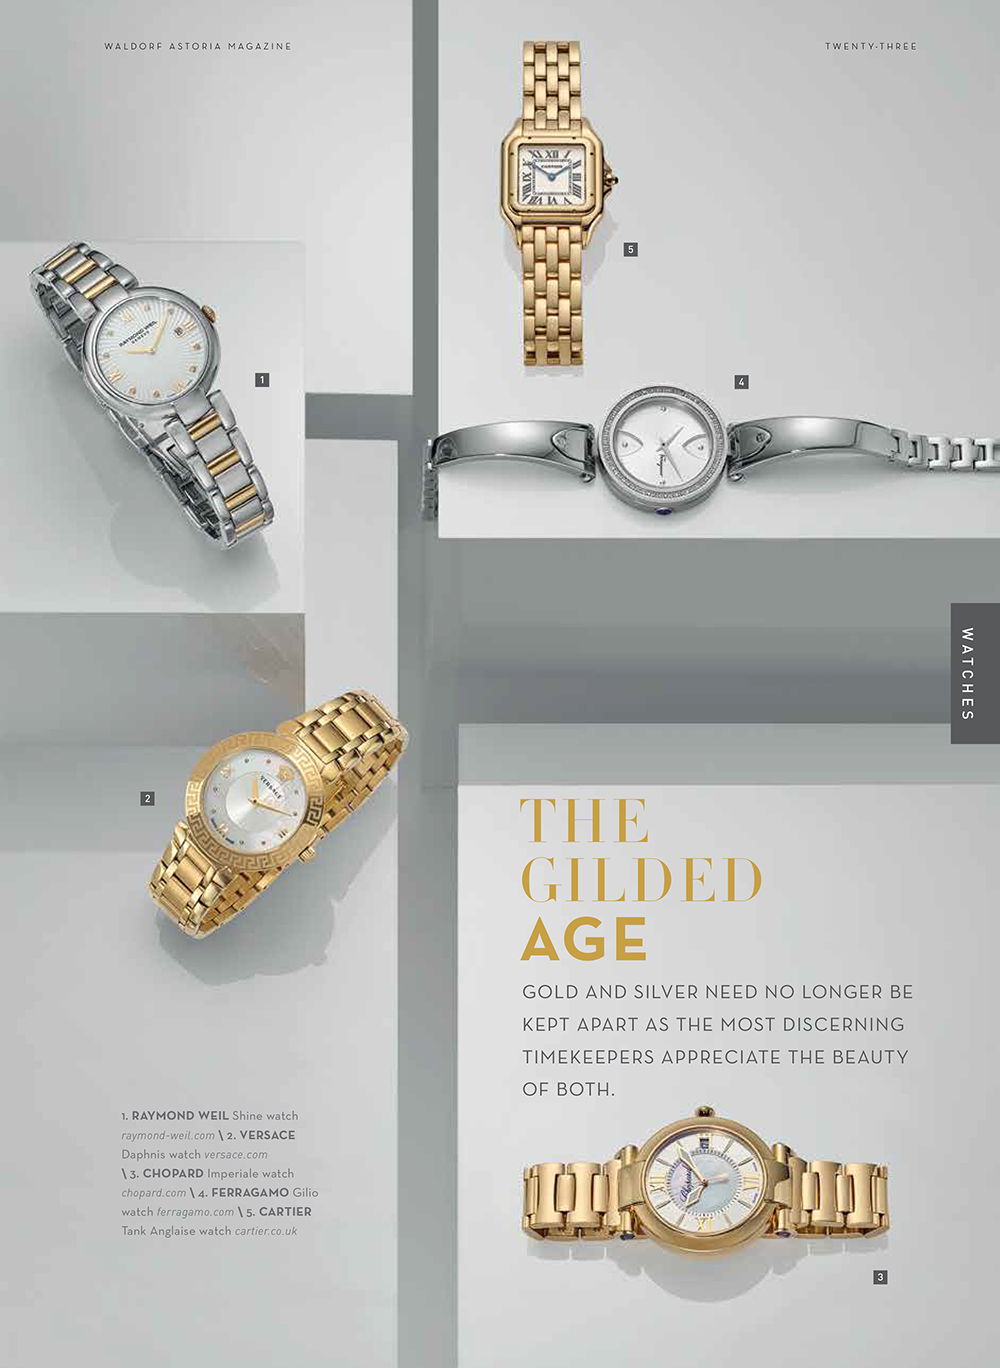 Jewellery design layout example. Gold Luxury watches make up this design layout with jewellery pieces on white gloss blocks